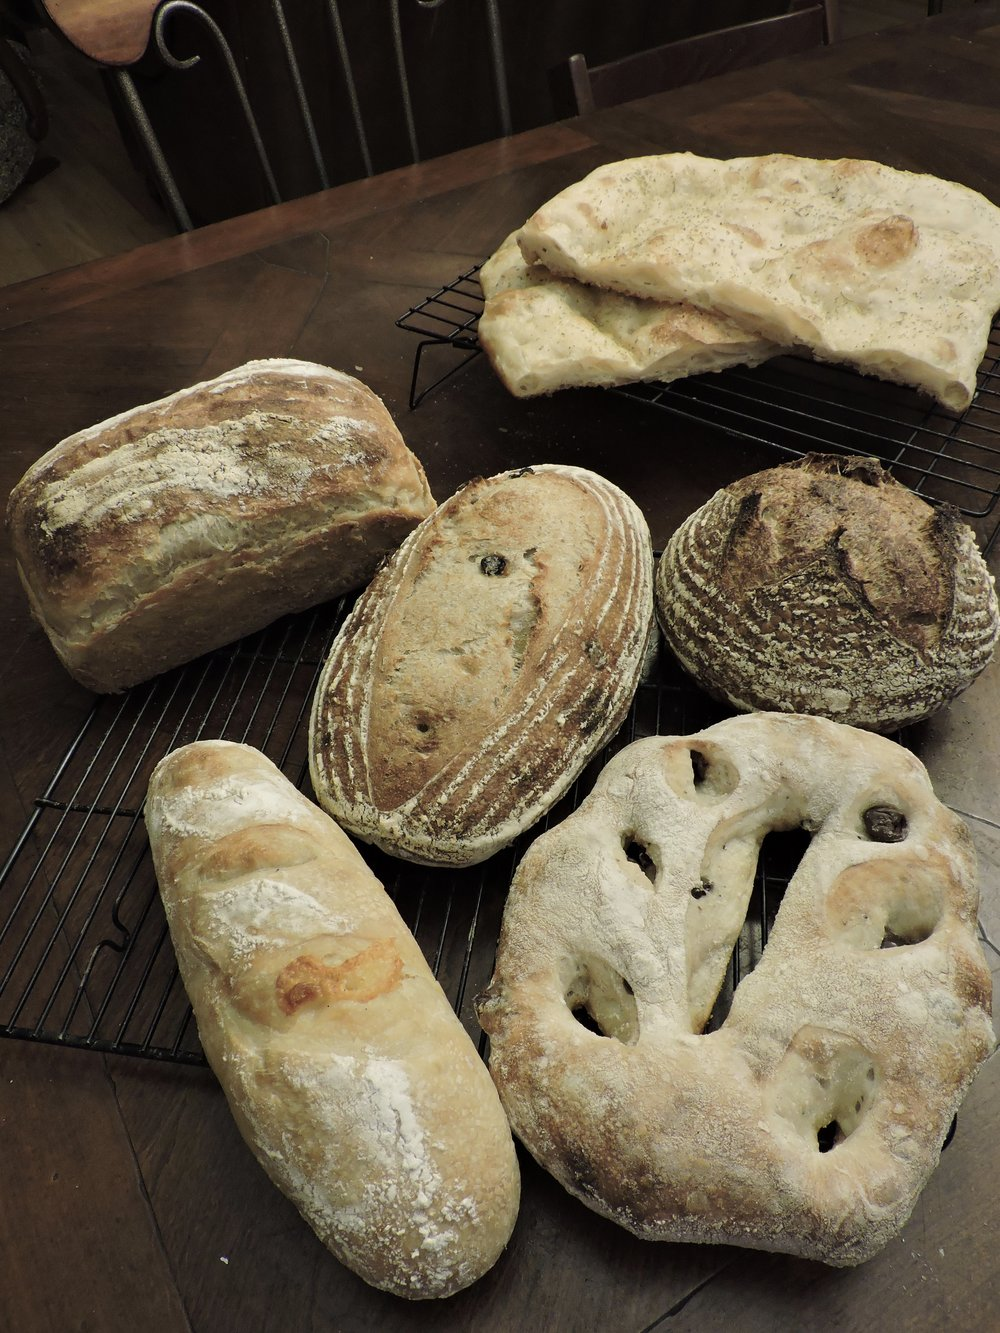 Rosemary focaccia (far back), then standard sourdough sandwich (middle far left), golden raisin fennel (middle), stout sourdough (middle far right), Dubliner cheddar batard (front left), and olive fougasse (front right).